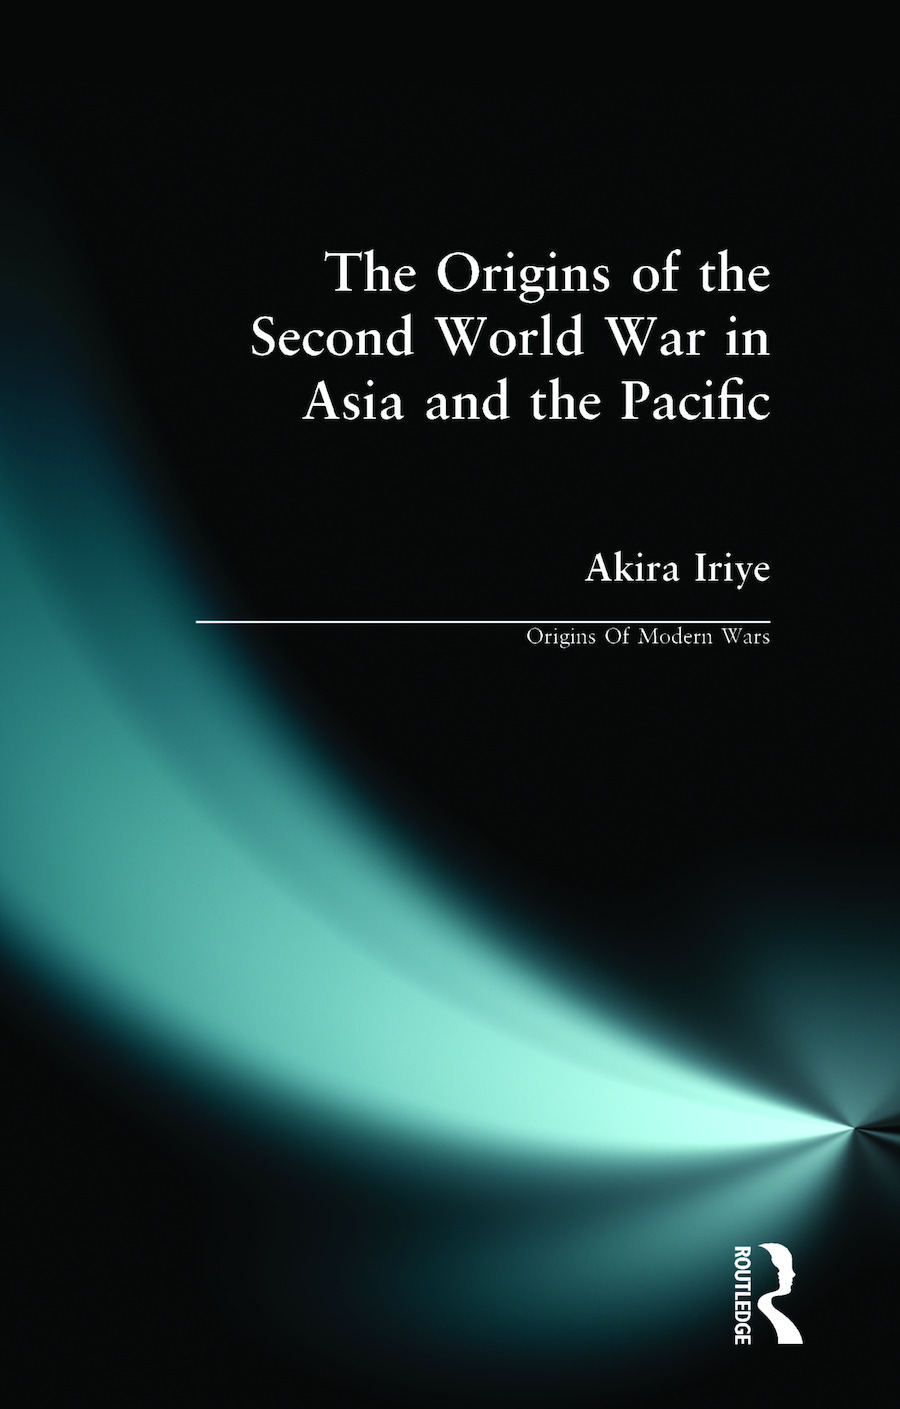 The Origins of the Second World War in Asia and the Pacific book cover